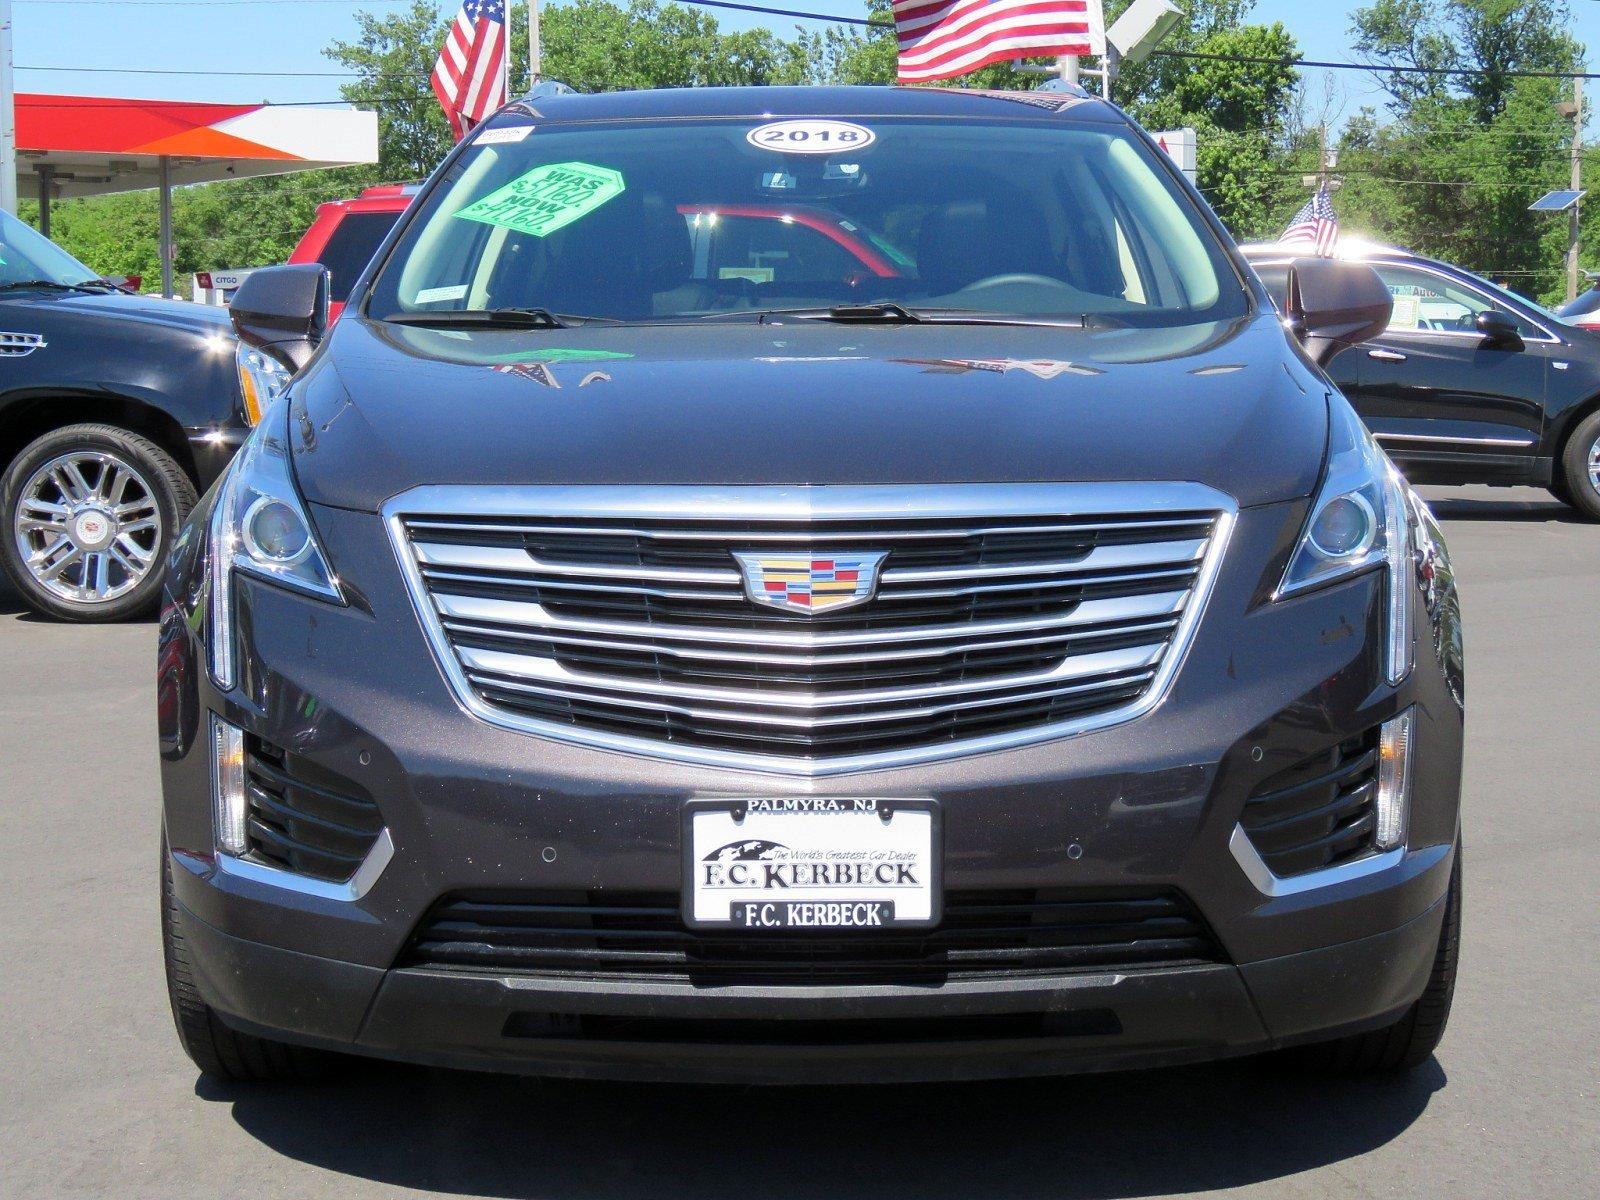 Used 2018 Cadillac Xt5 Luxury Awd For Sale 41 160 Fc Kerbeck